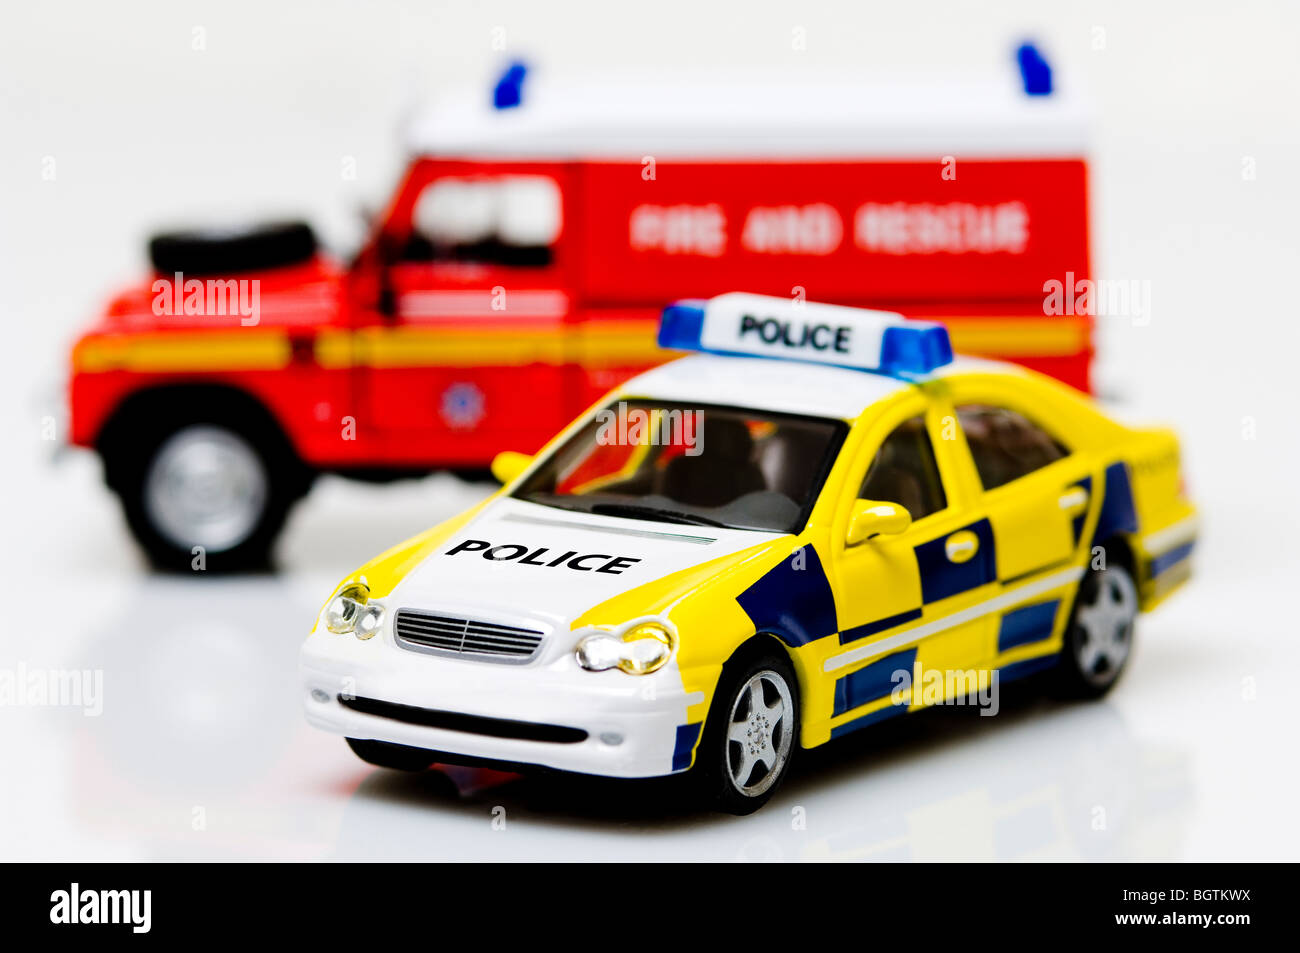 Toy British Police car with Fire and Rescue vehicle in the background Stock Photo